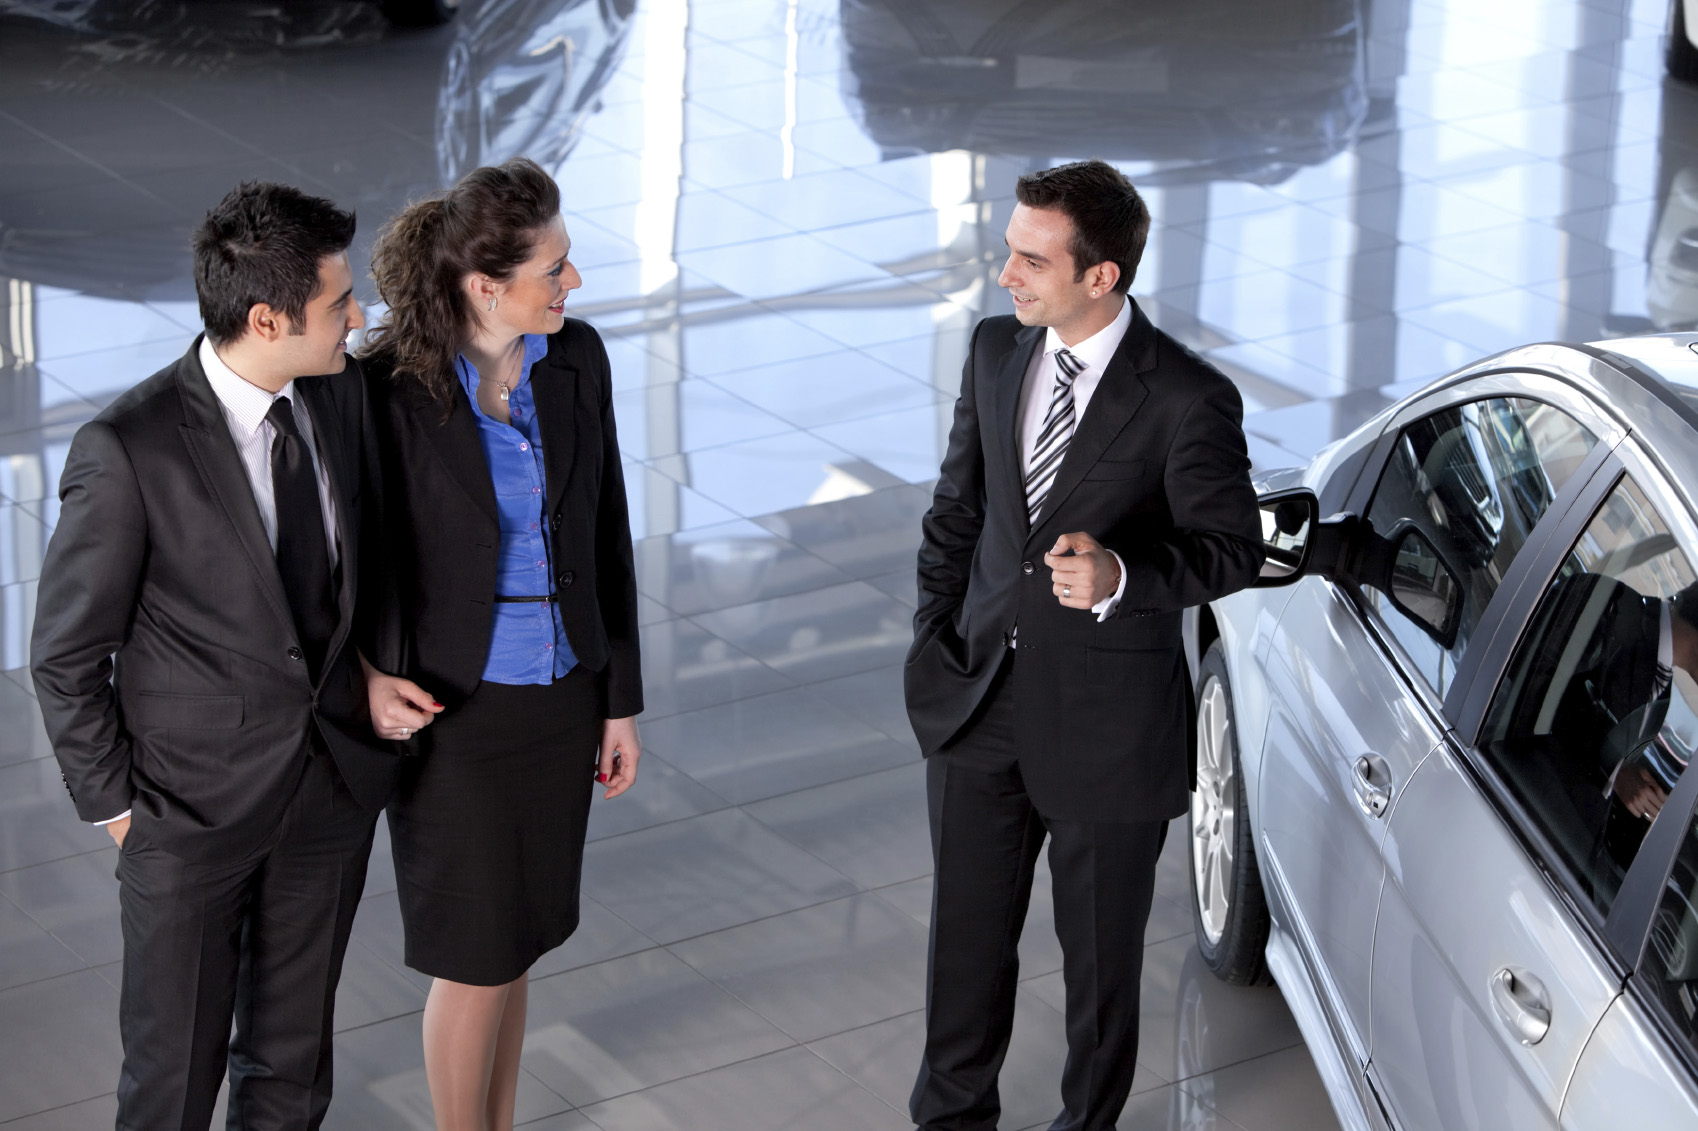 Used Vehicle Financing near Belvidere, IL